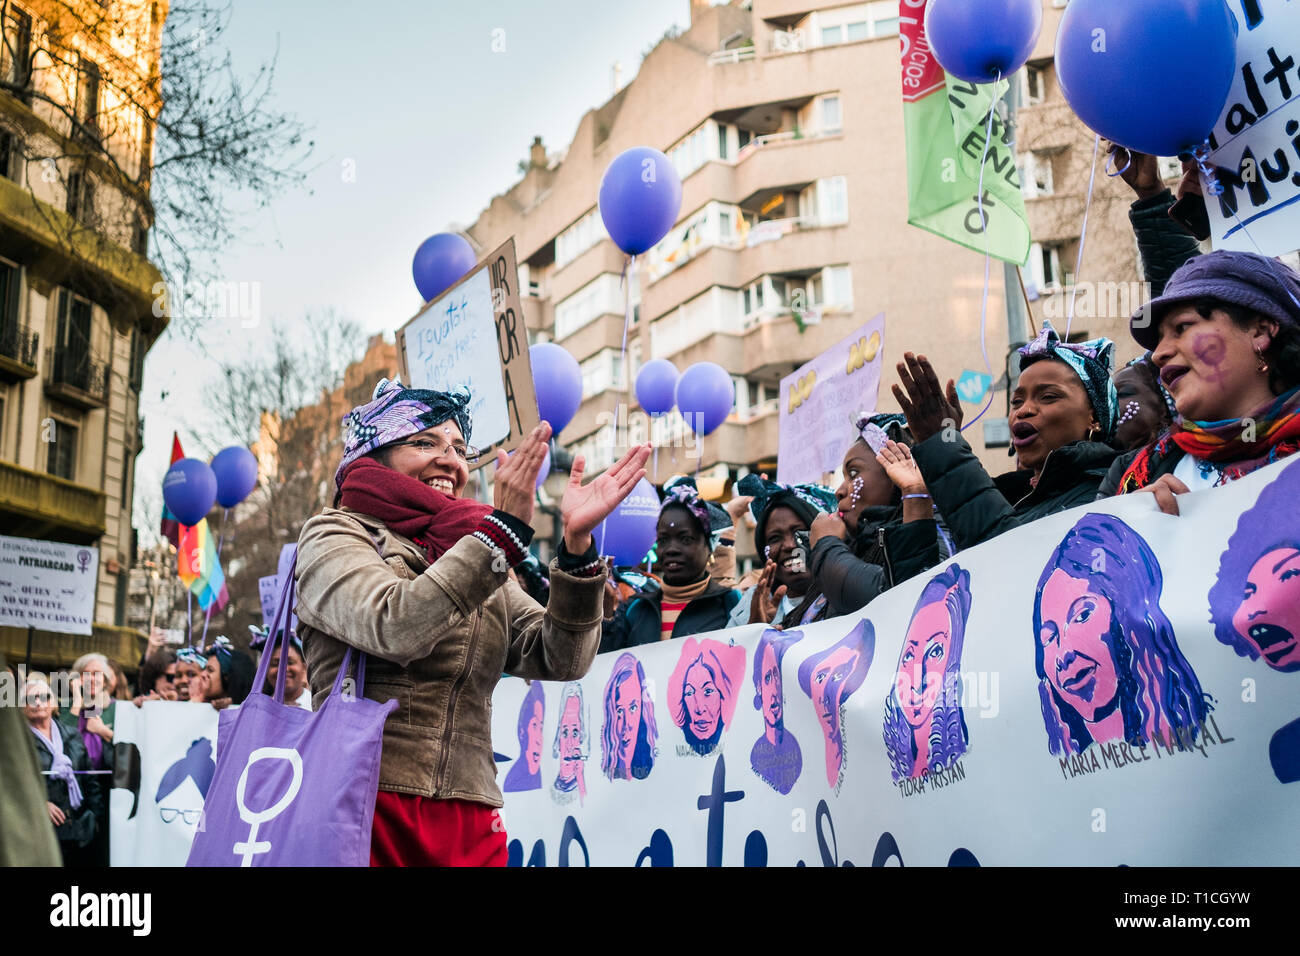 Barcelona, Spain - 8 march 2019:  women chanting and calpping in the city during woman's day with purple balloons - Stock Image